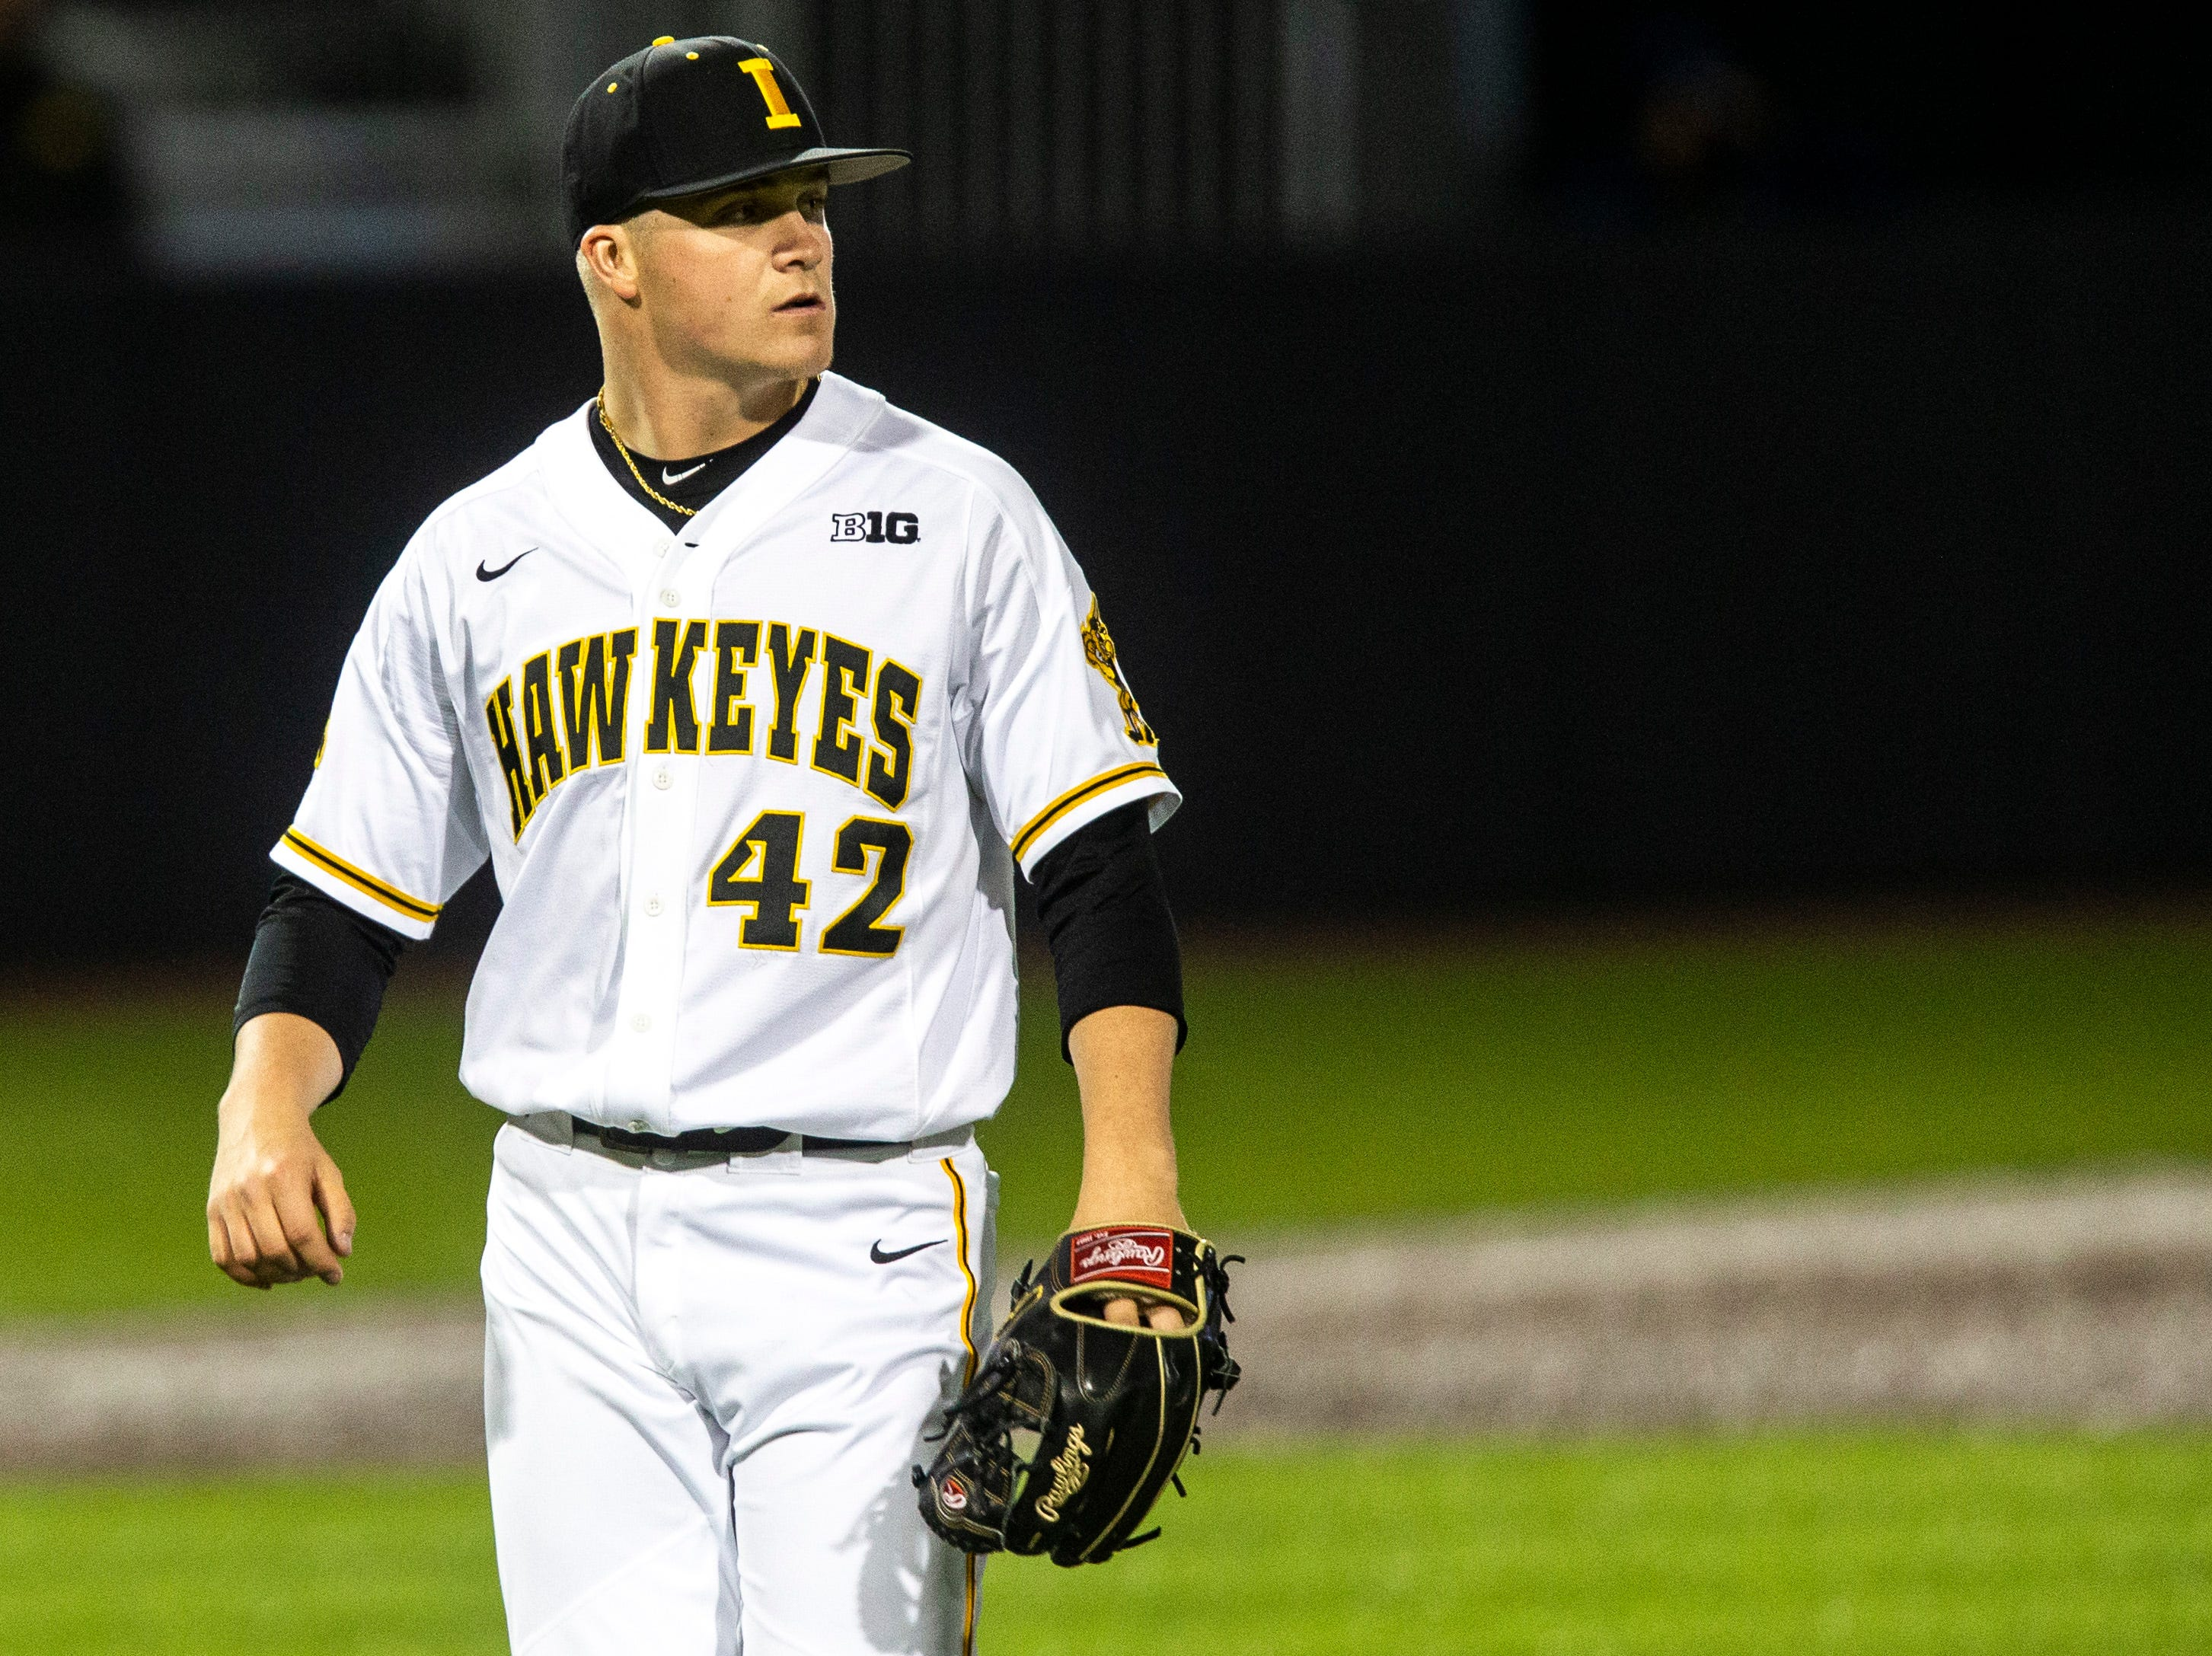 Iowa pitcher Trace Hoffman (42) is pictured during NCAA non conference baseball game, Friday, May 3, 2019, at Duane Banks Field in Iowa City, Iowa.